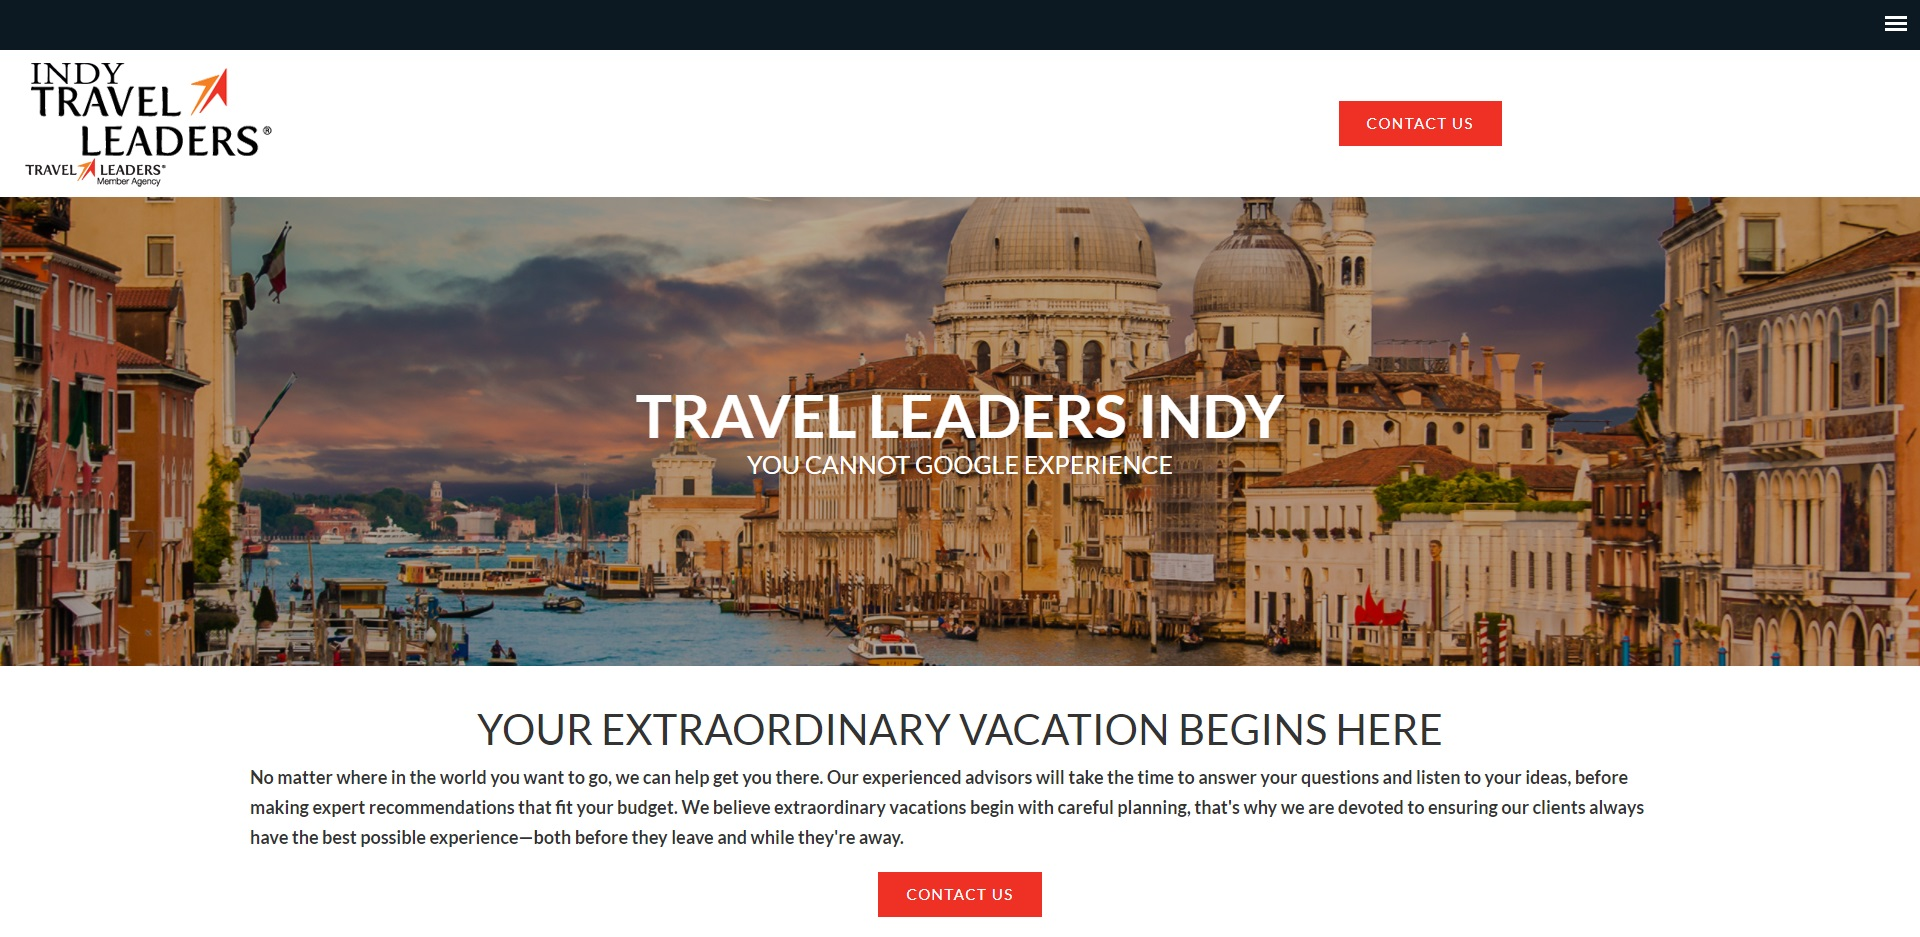 5 Best Travel Agents in Indianapolis, IN